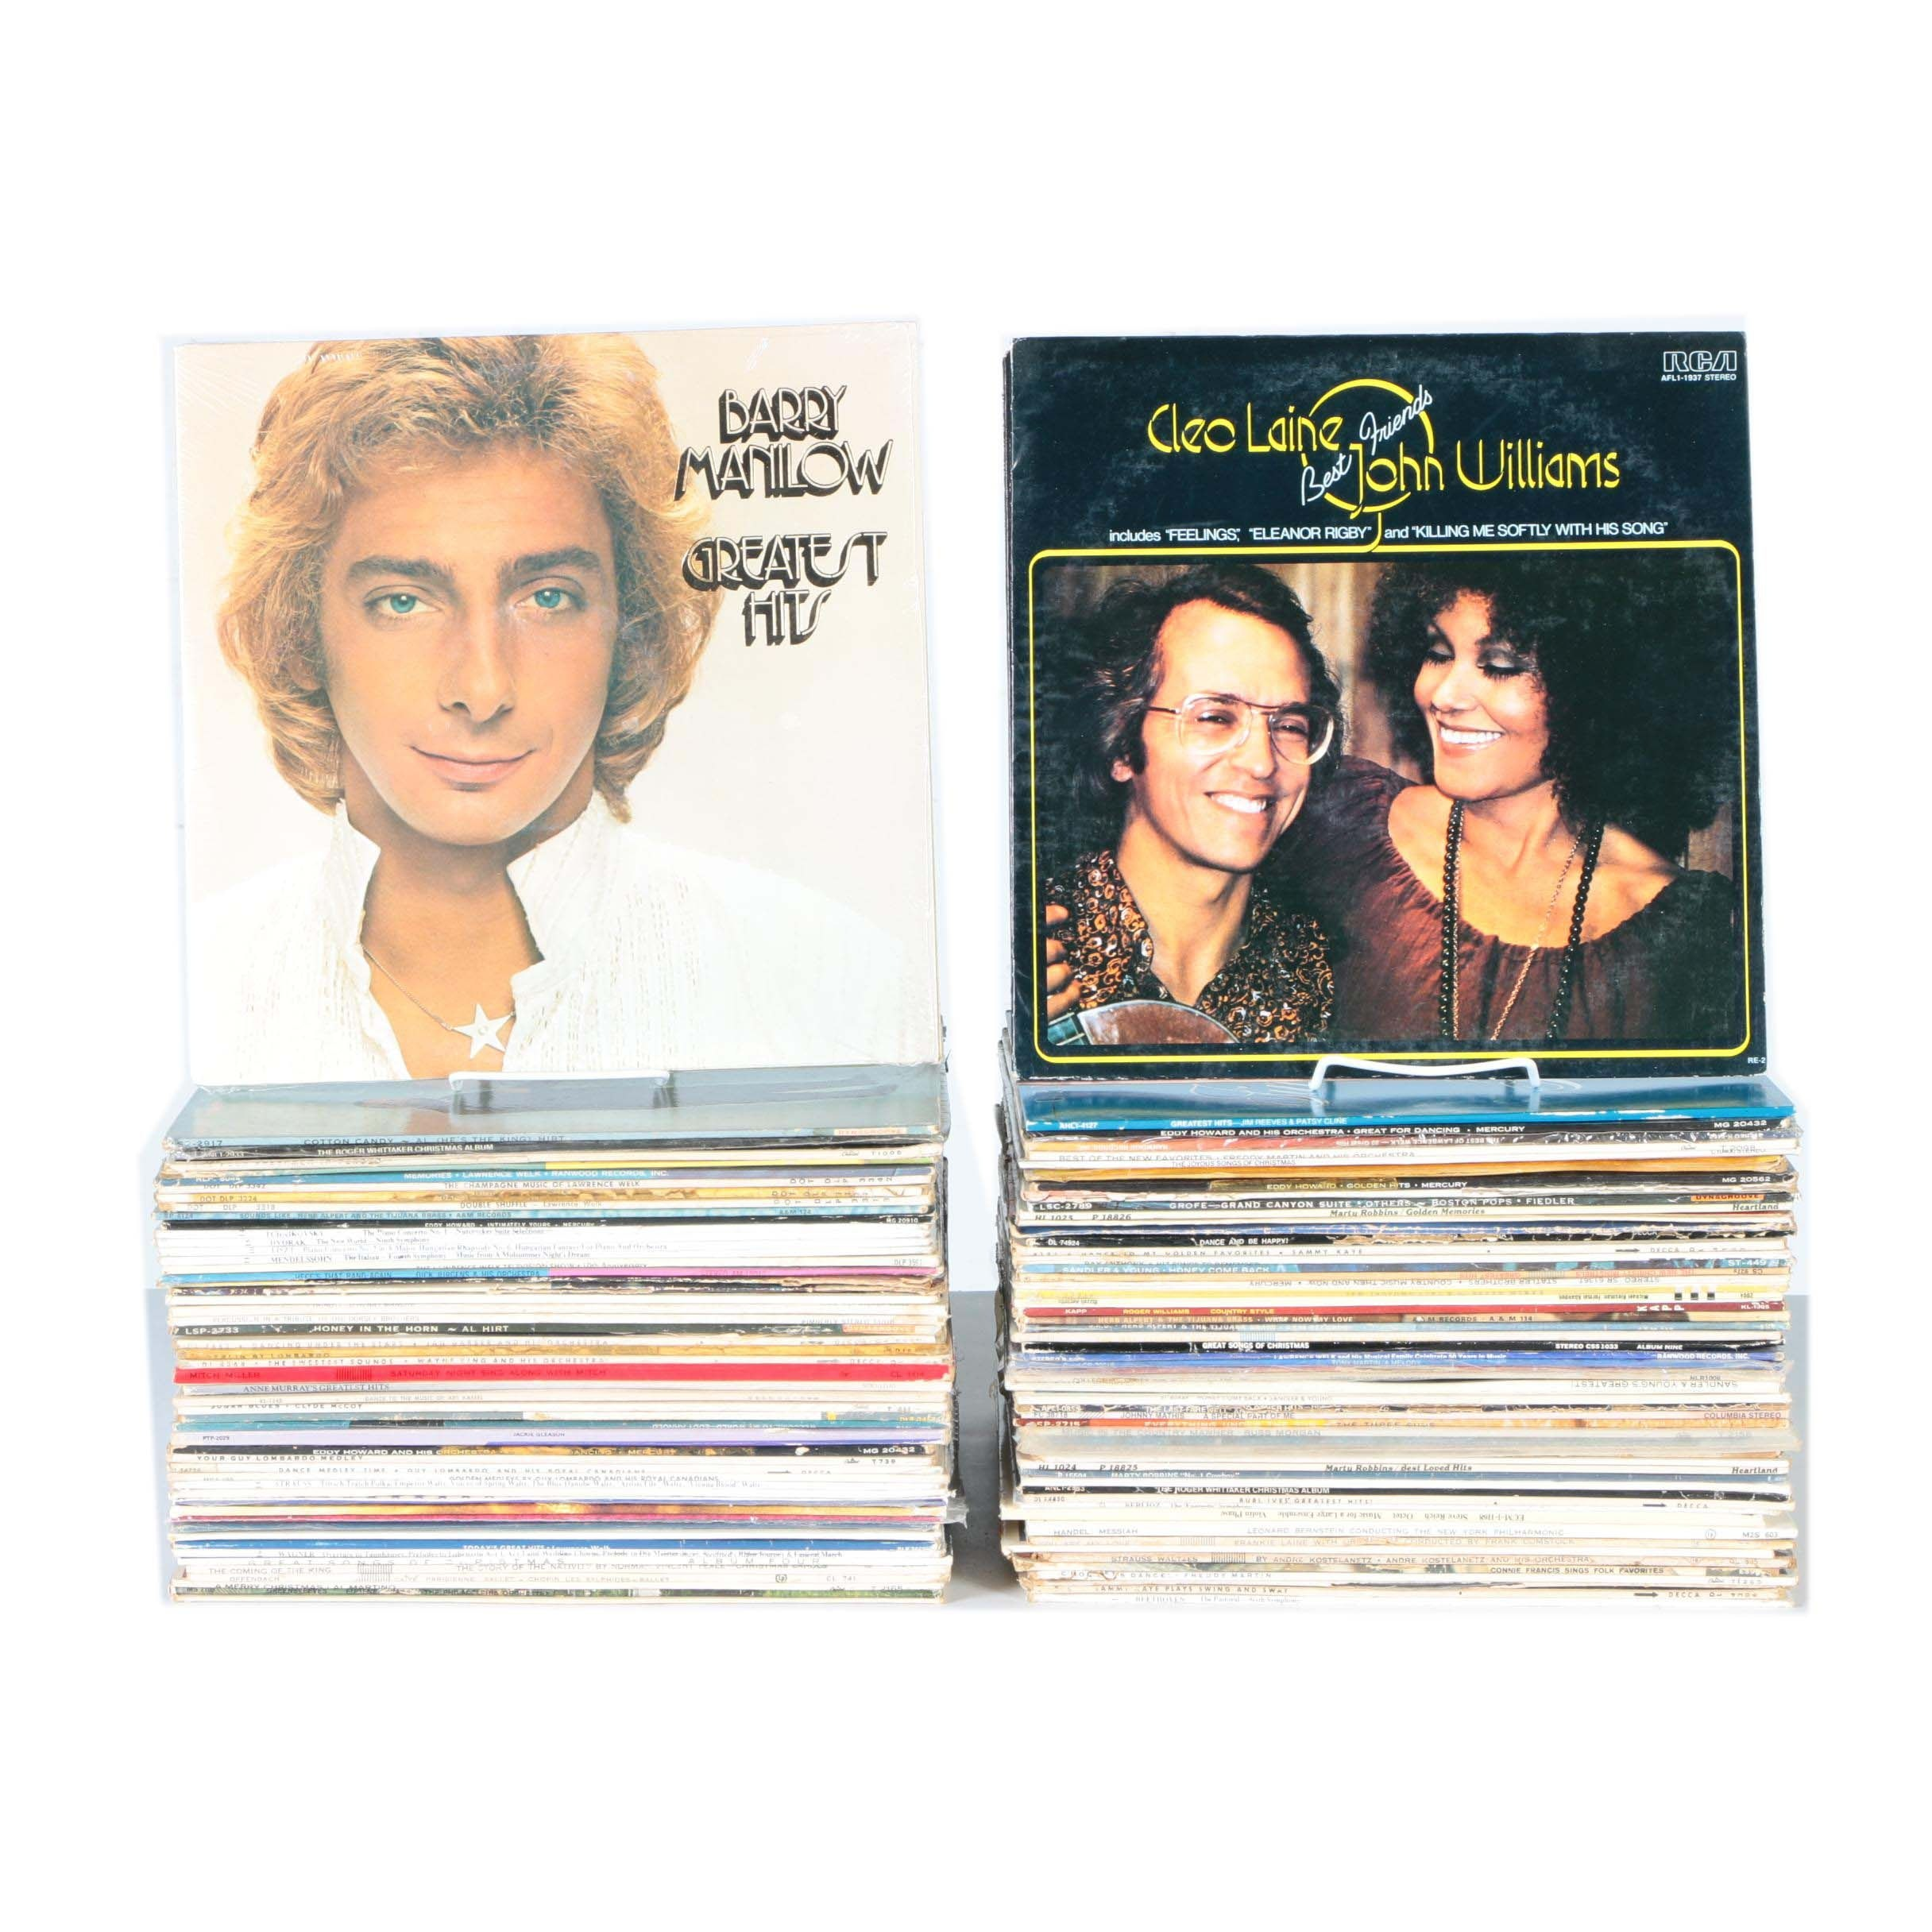 Over 100 Country, Easy Listening and Other LPs